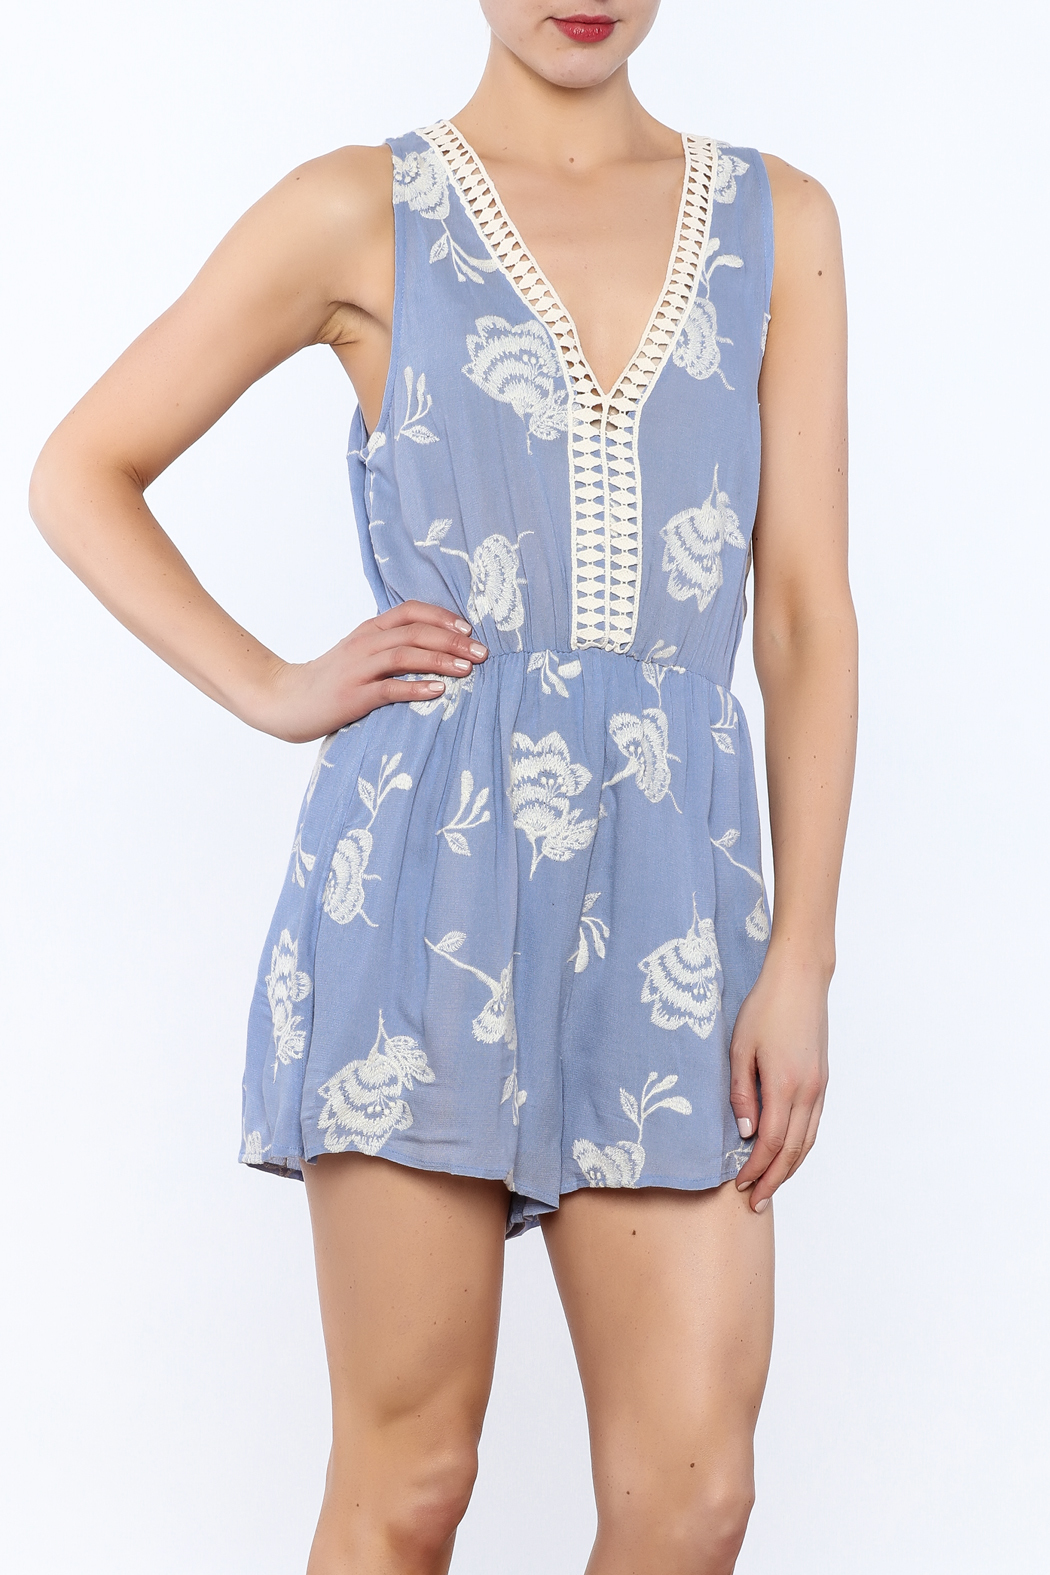 b289d92b8b38 Lush Blue Sleeveless Romper from Indiana by Single Thread Boutique ...